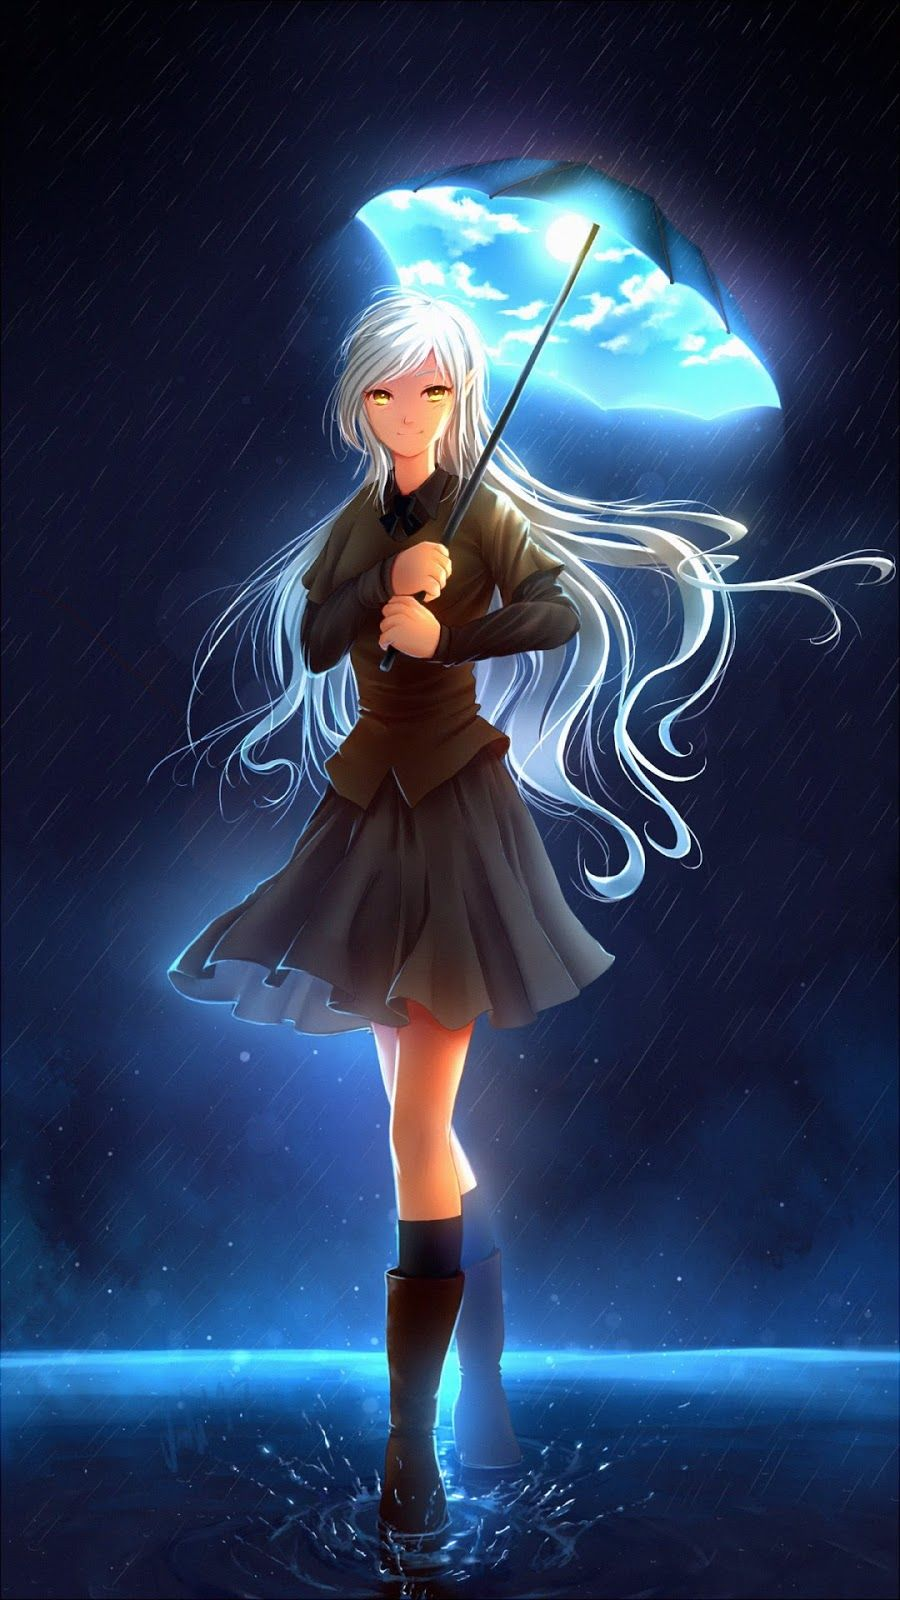 Pin On Mobile Wallpapers Anime magic iphone wallpaper